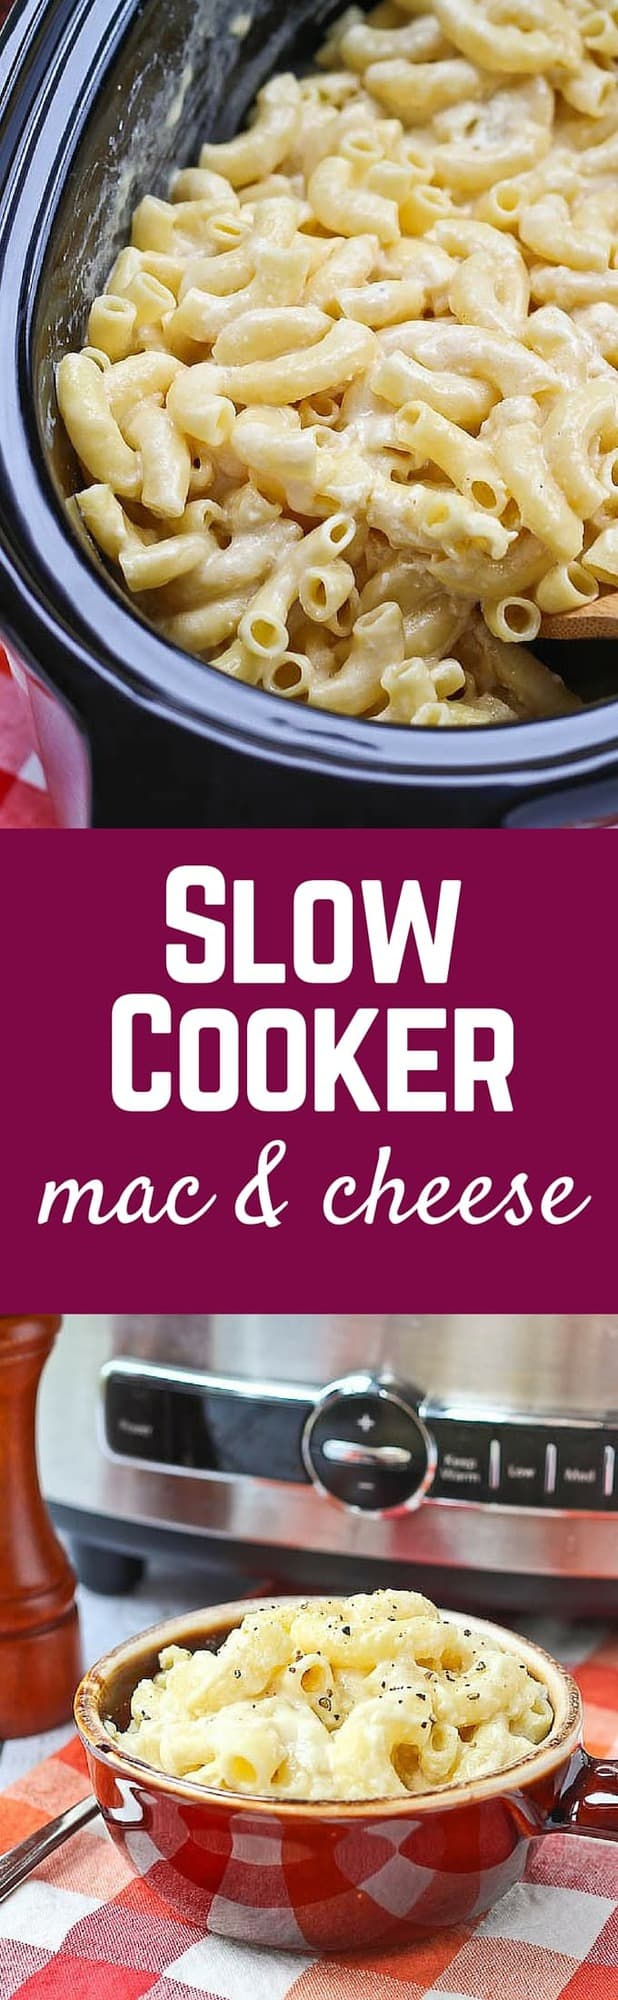 Slow Cooker Macaroni and Cheese Recipe - Rachel Cooks®